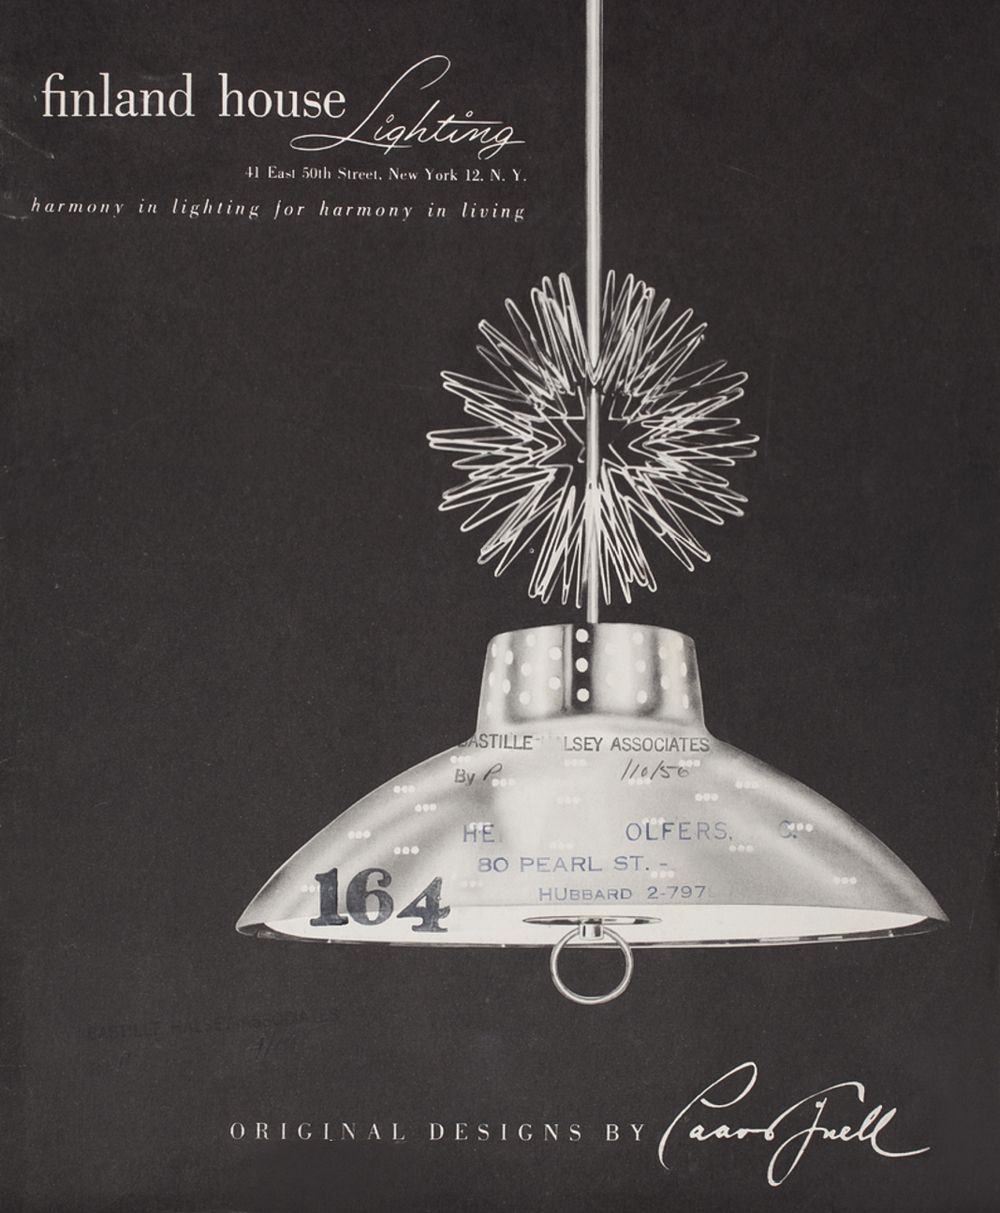 The Finland House catalog cover, late 1940s, featuring ceiling lamp model nr.9081.